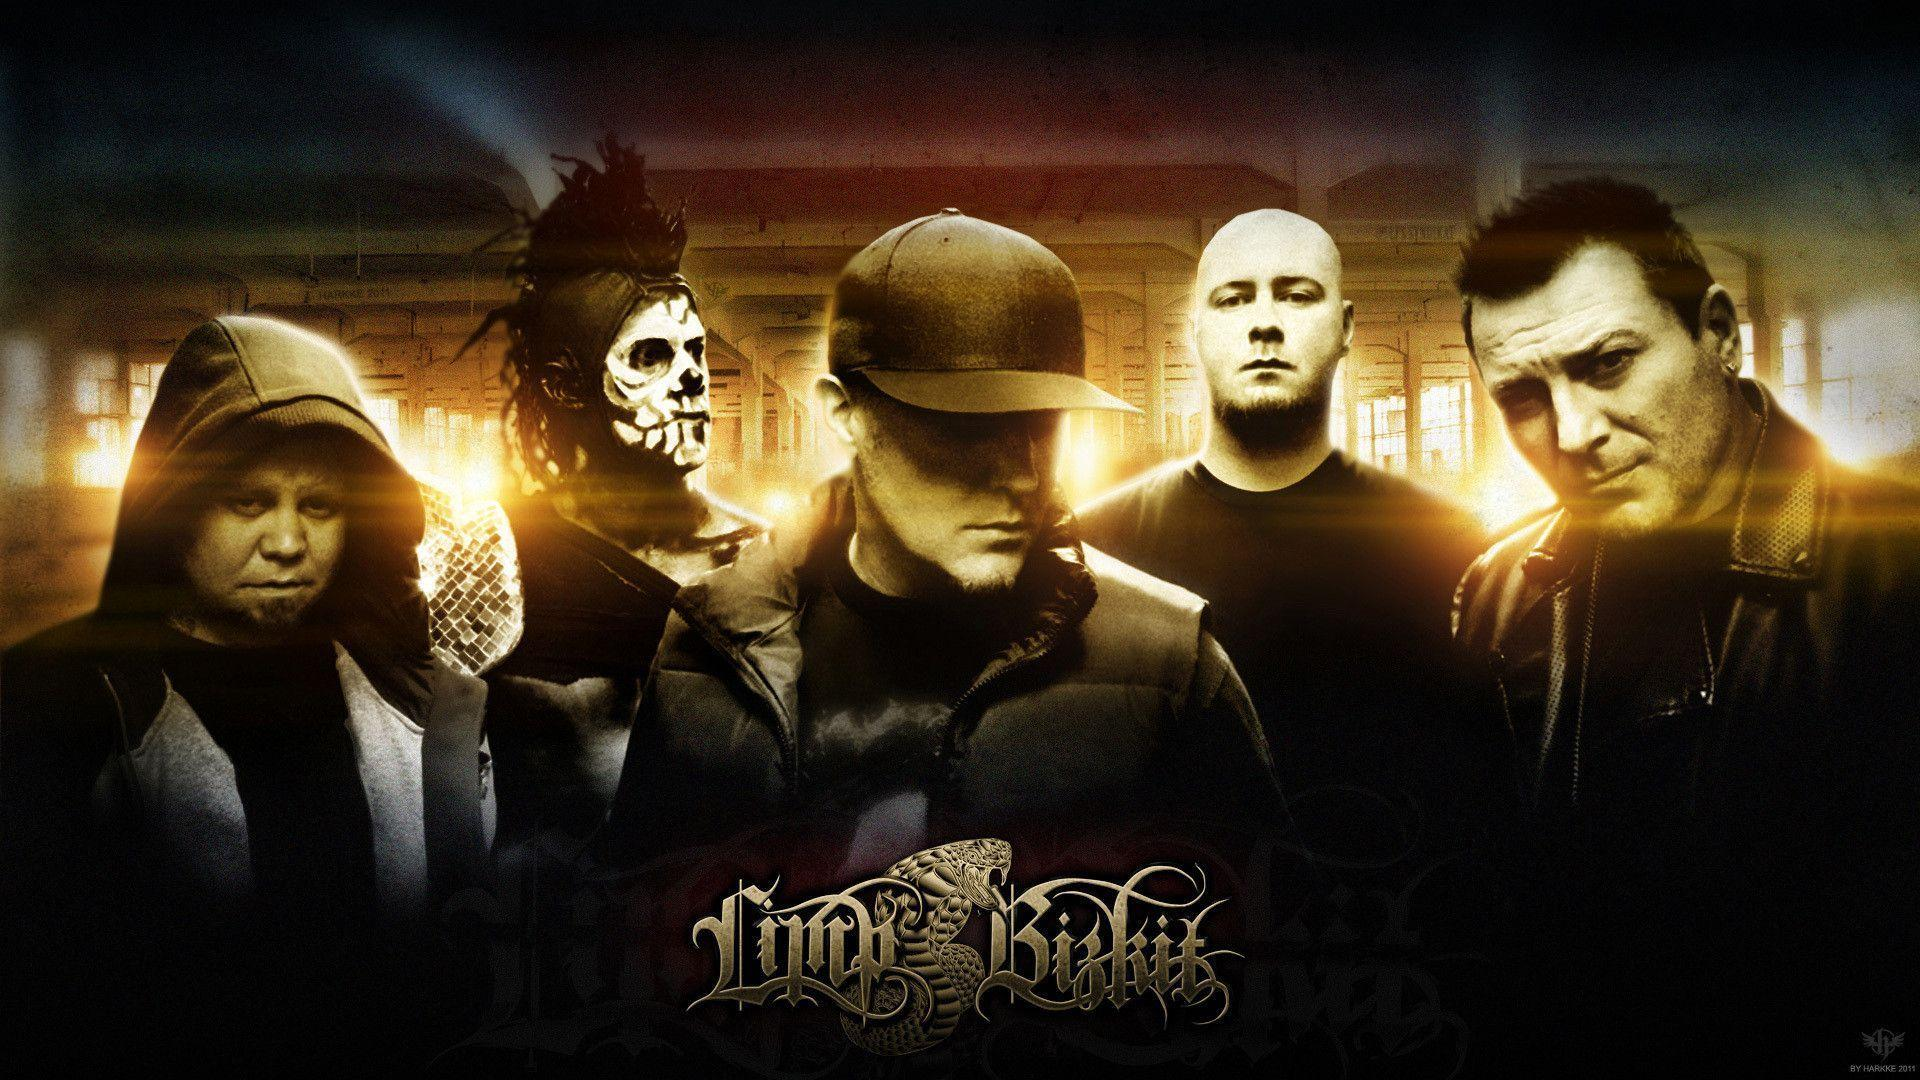 Music Limp Bizkit Wallpapers 1920x1080 px Free Download